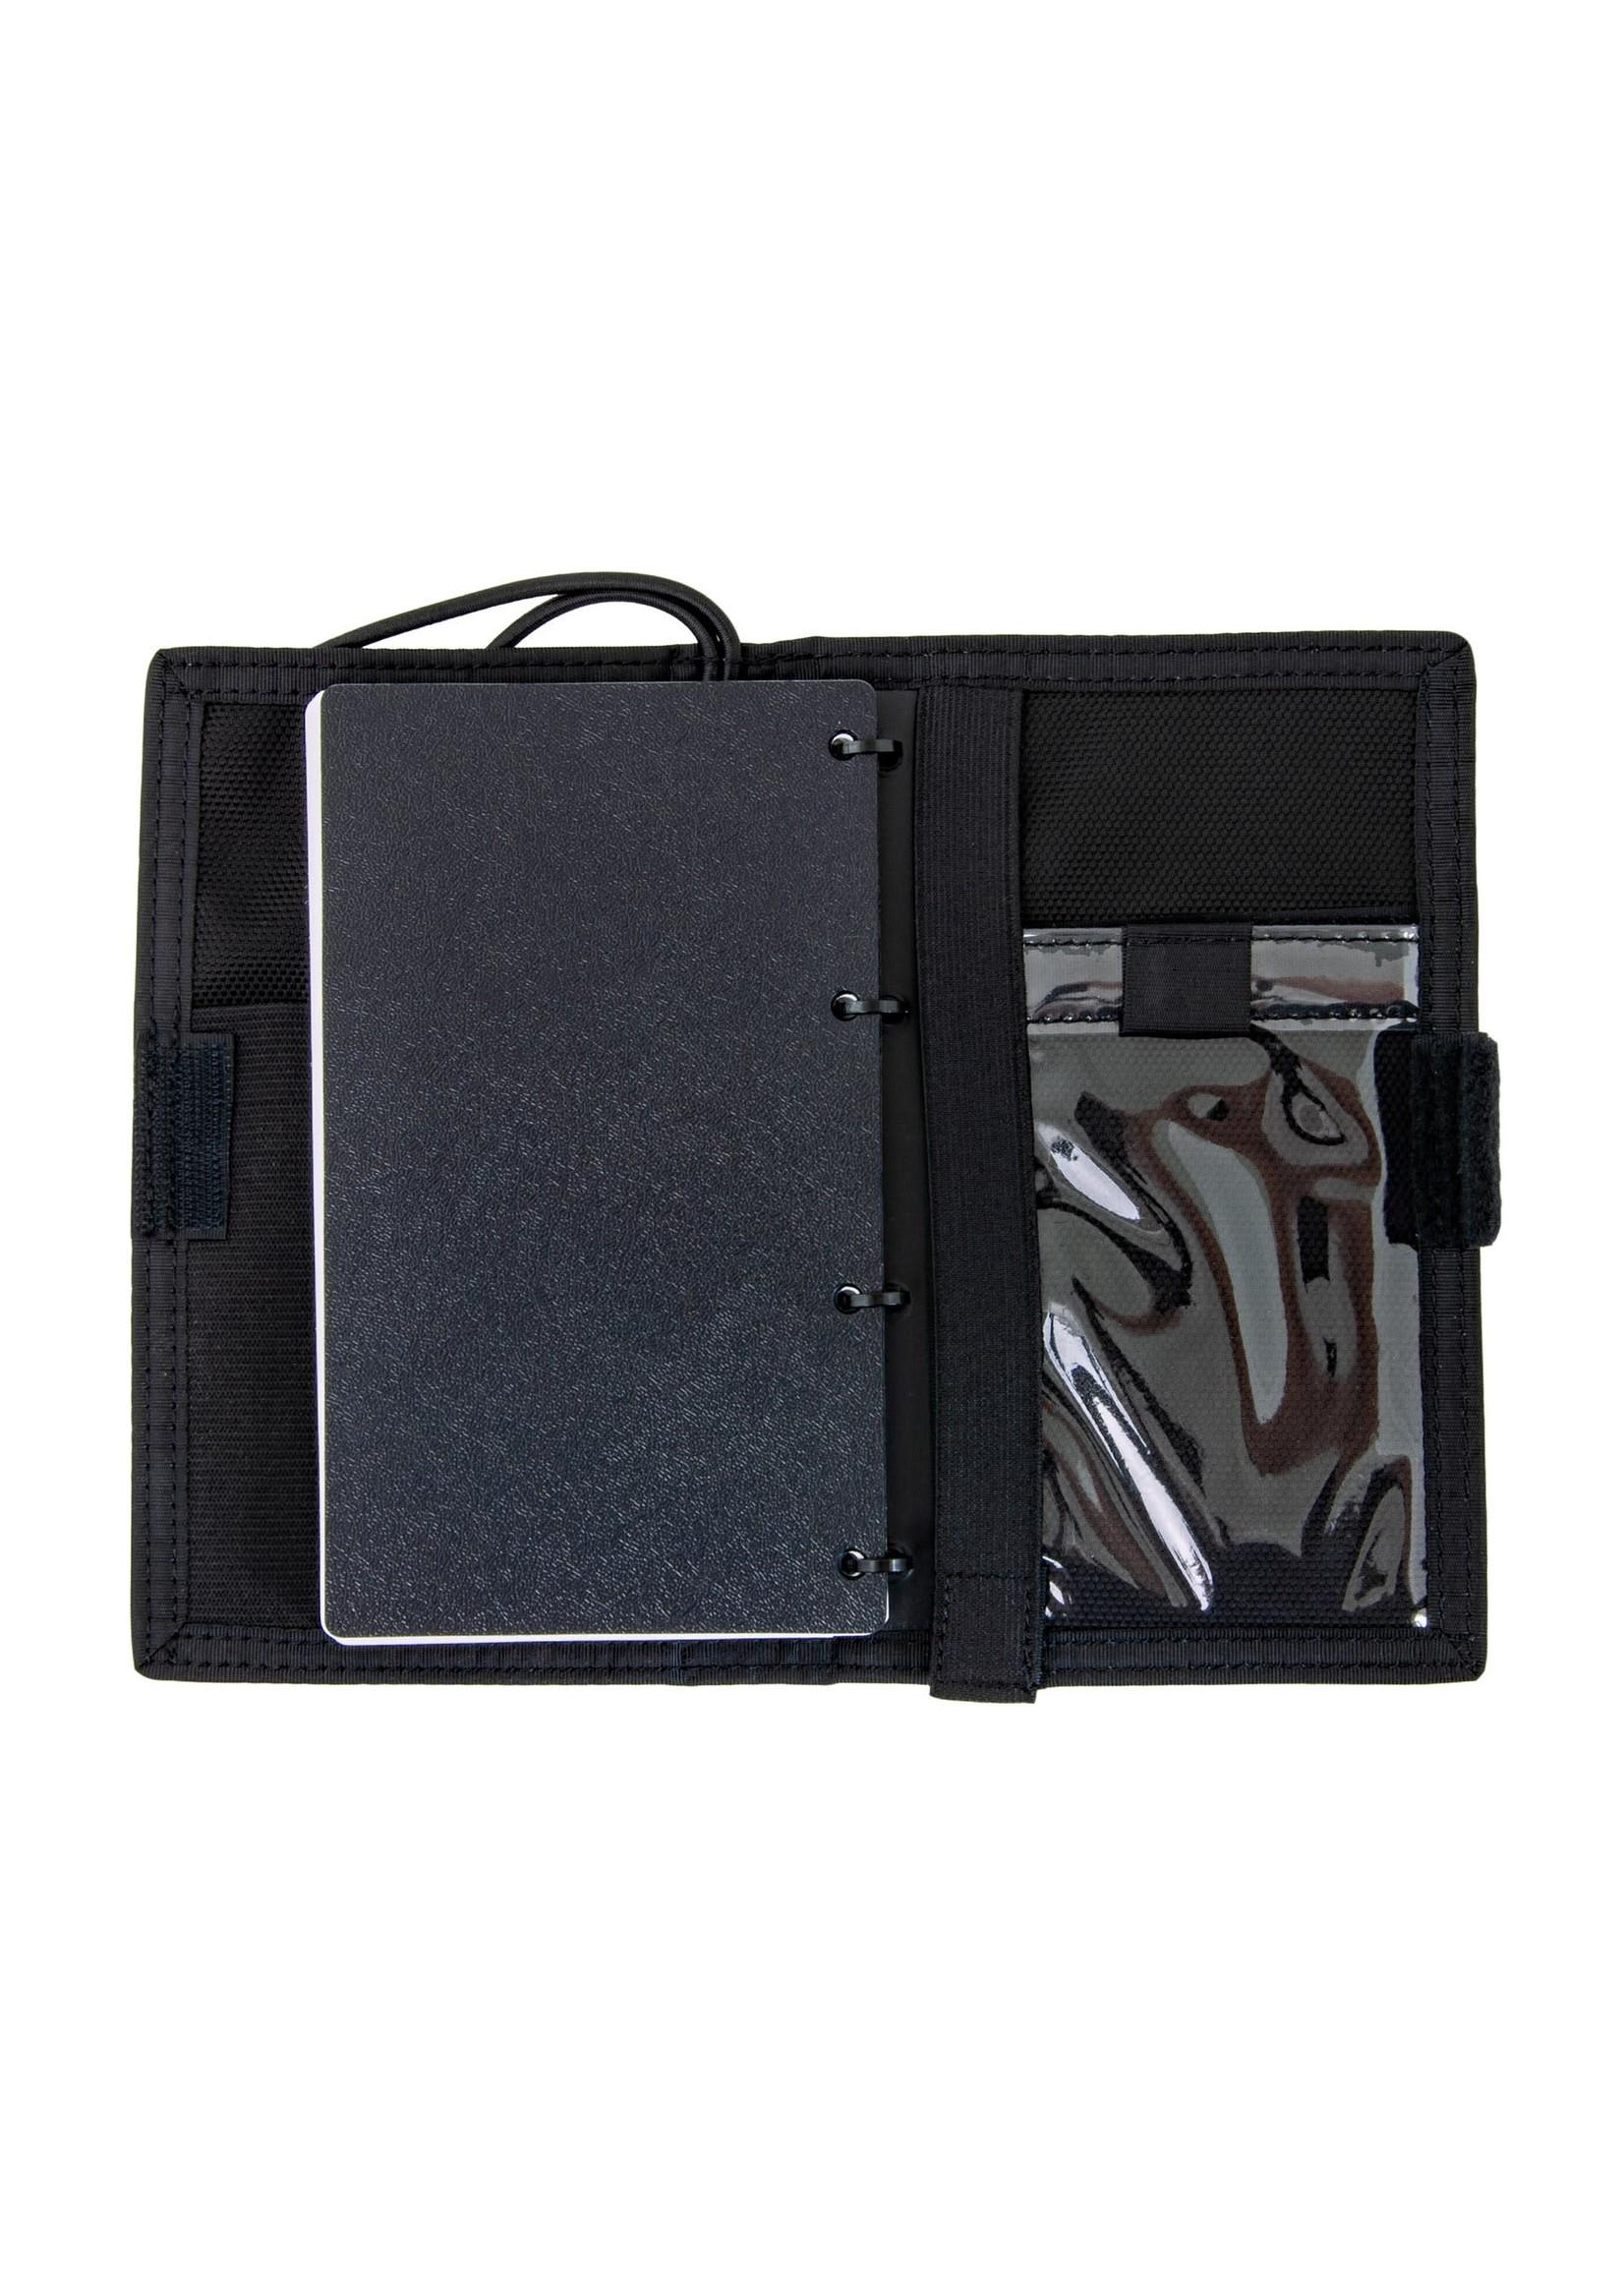 TecLine Tecline Wet notes with cordura cover